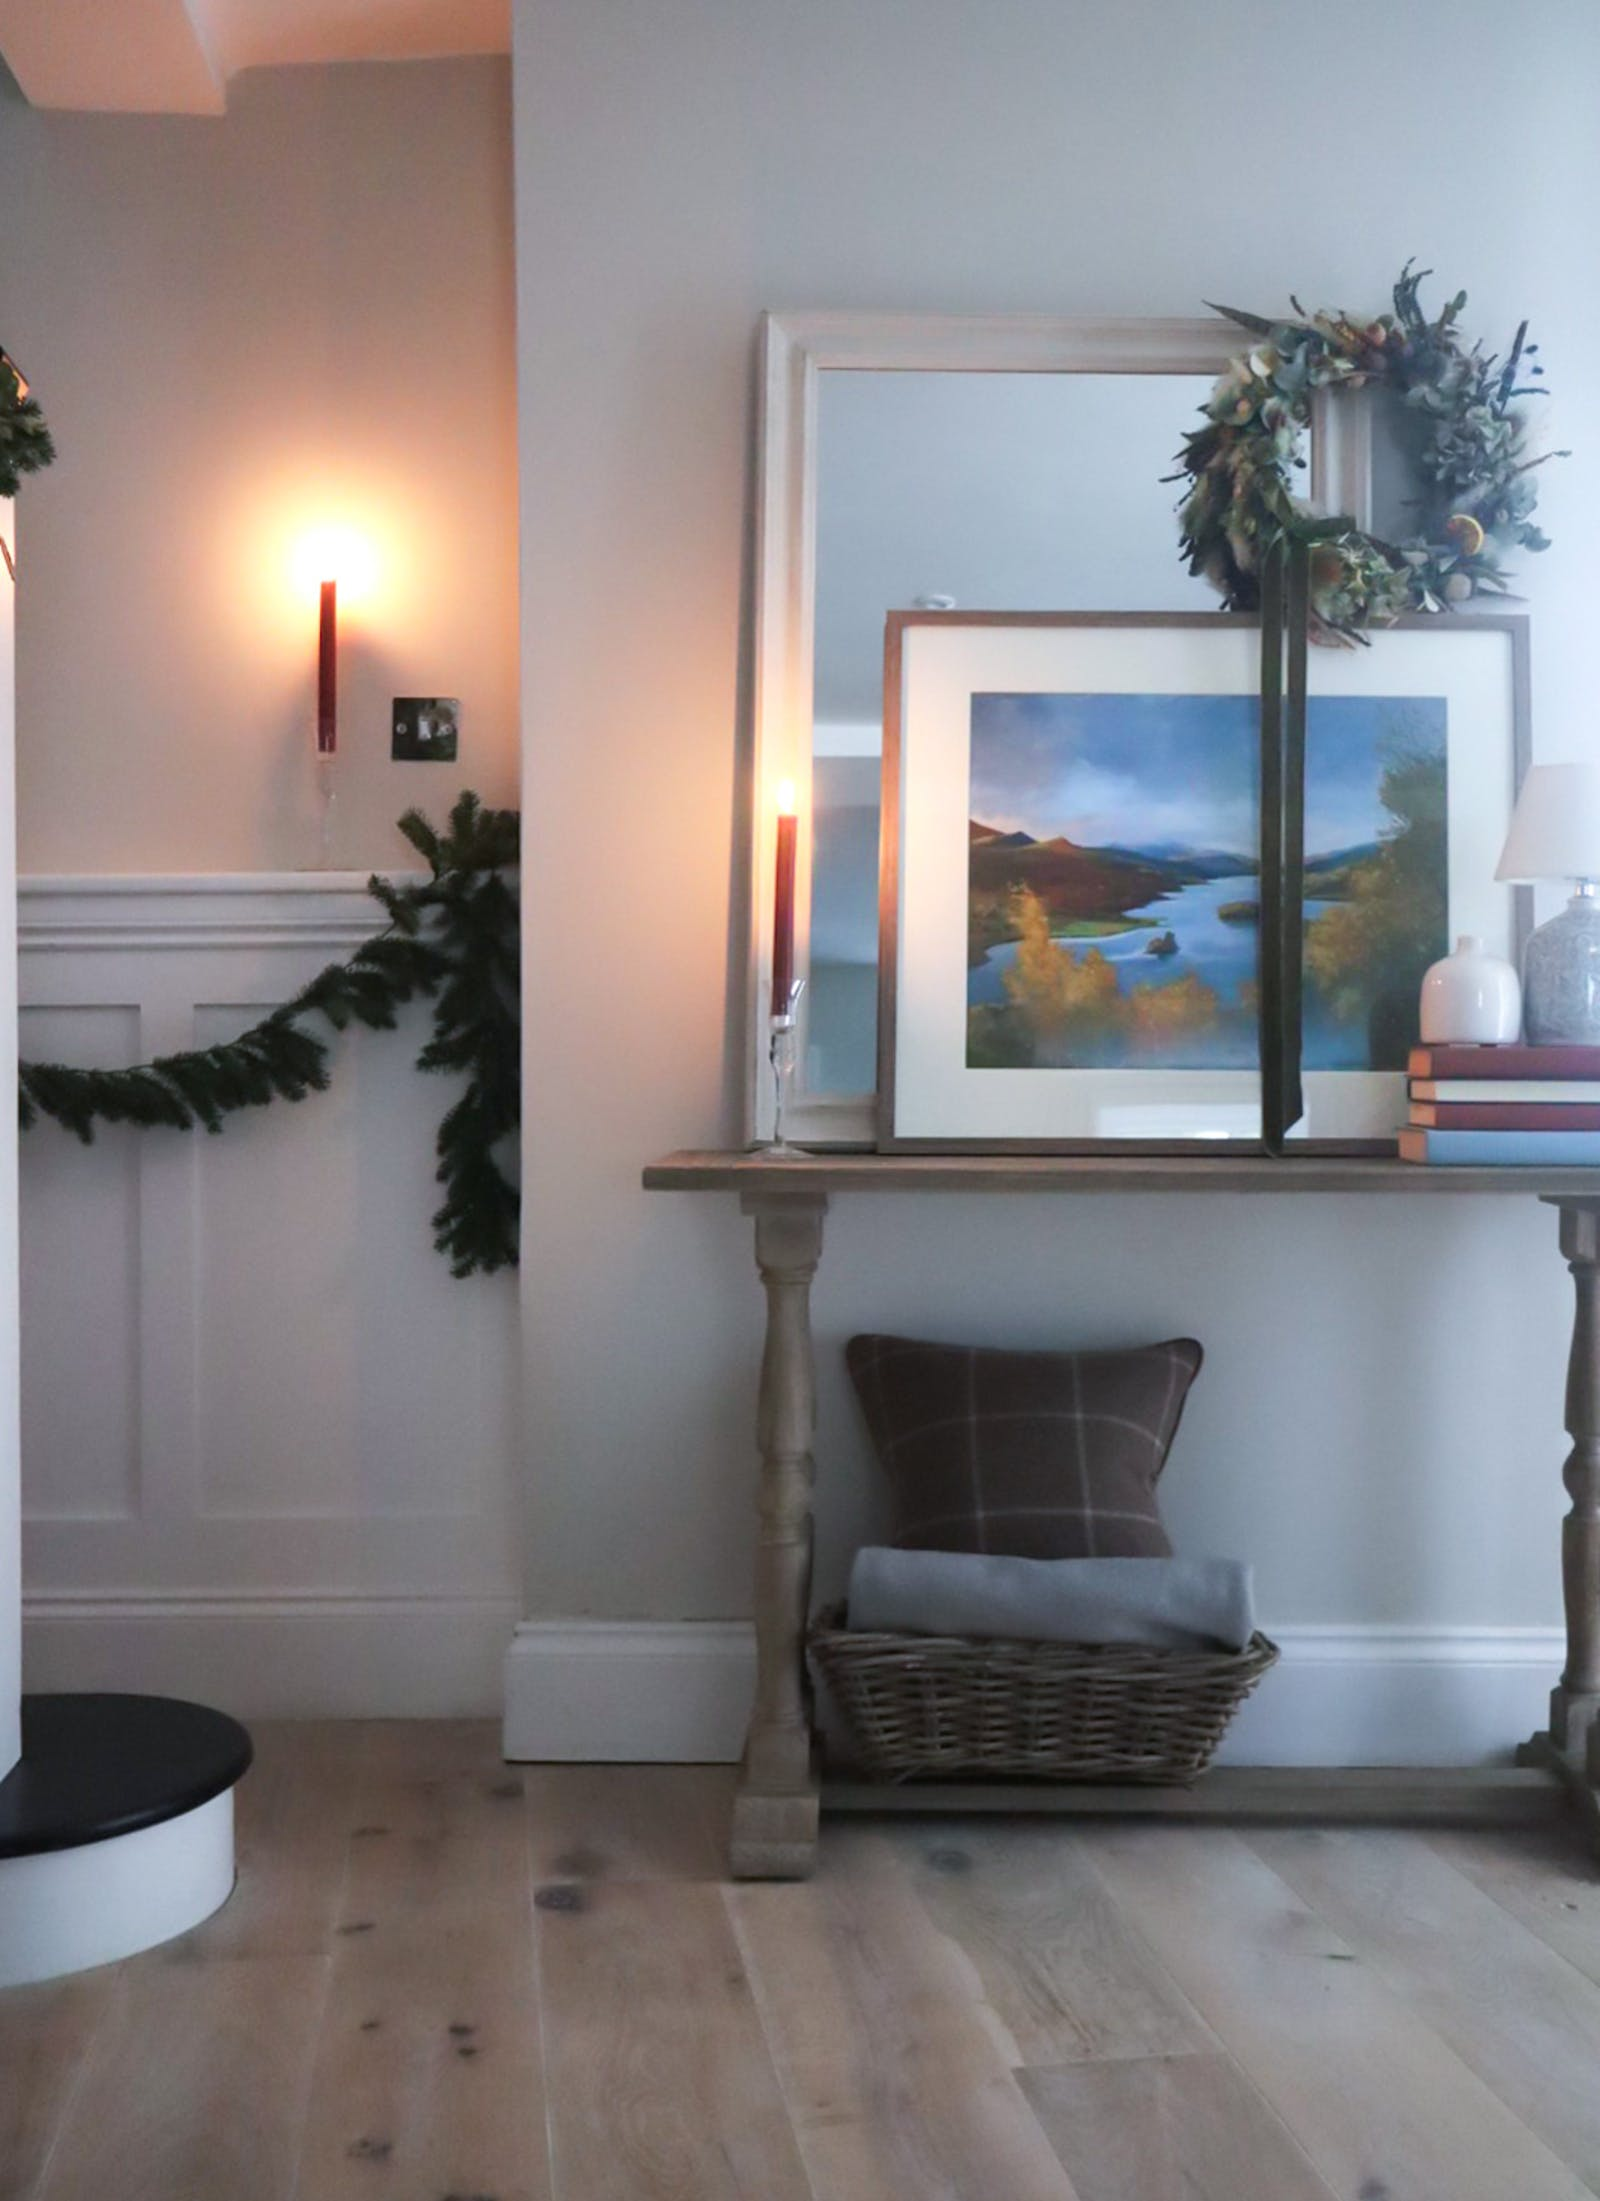 Hallway decoration in Christmas foliage and candles